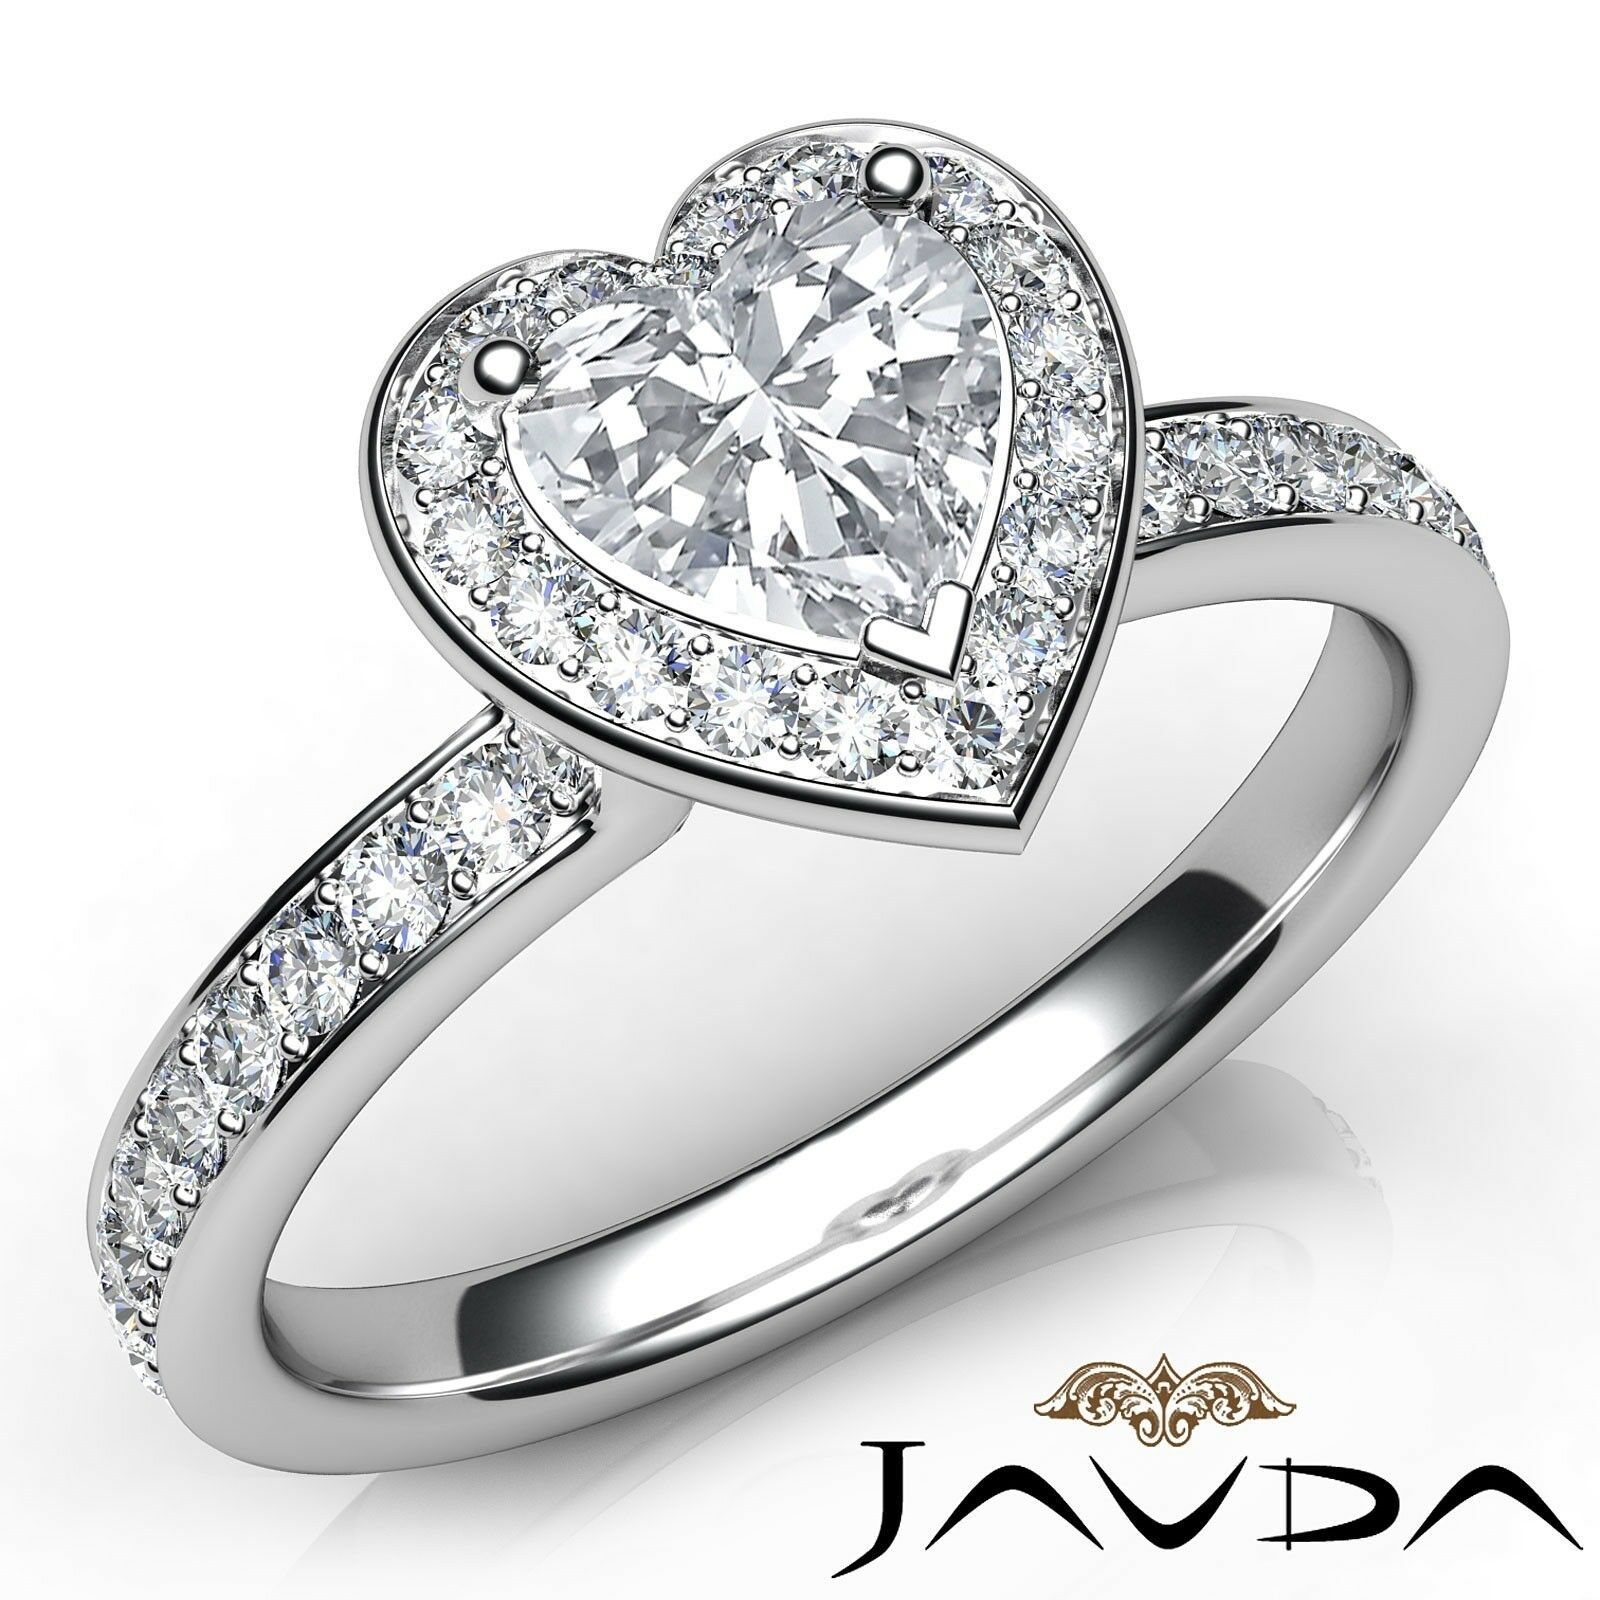 1.35ctw Cathedral Rings Heart Diamond Engagement Ring GIA I-SI2 White Gold Rings